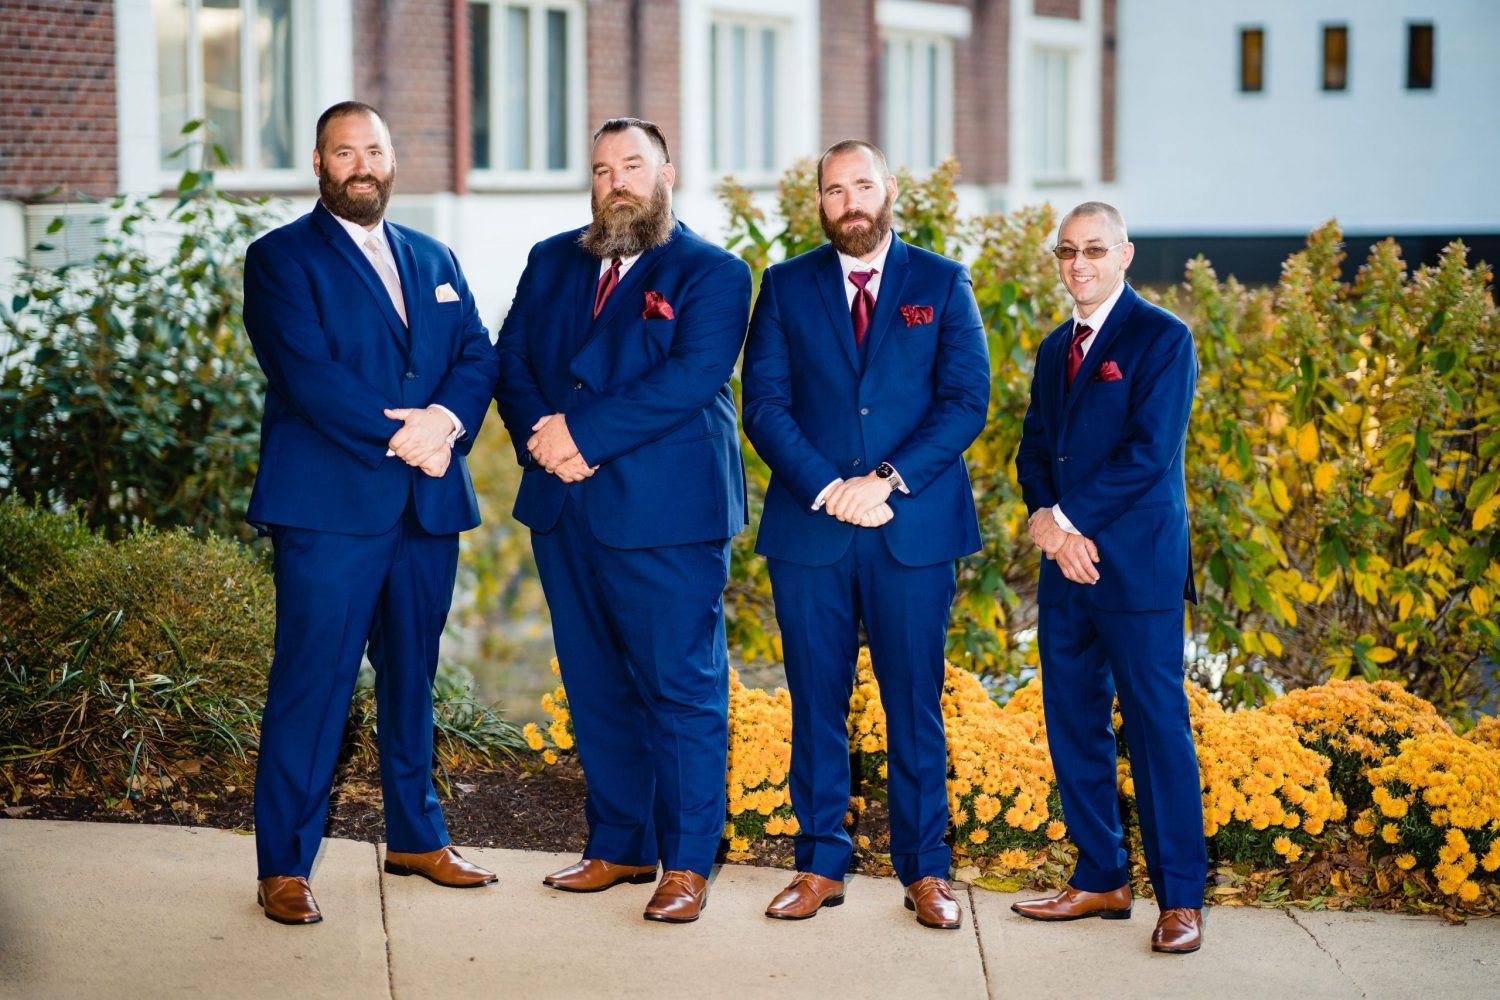 Grooms must have wedding photos